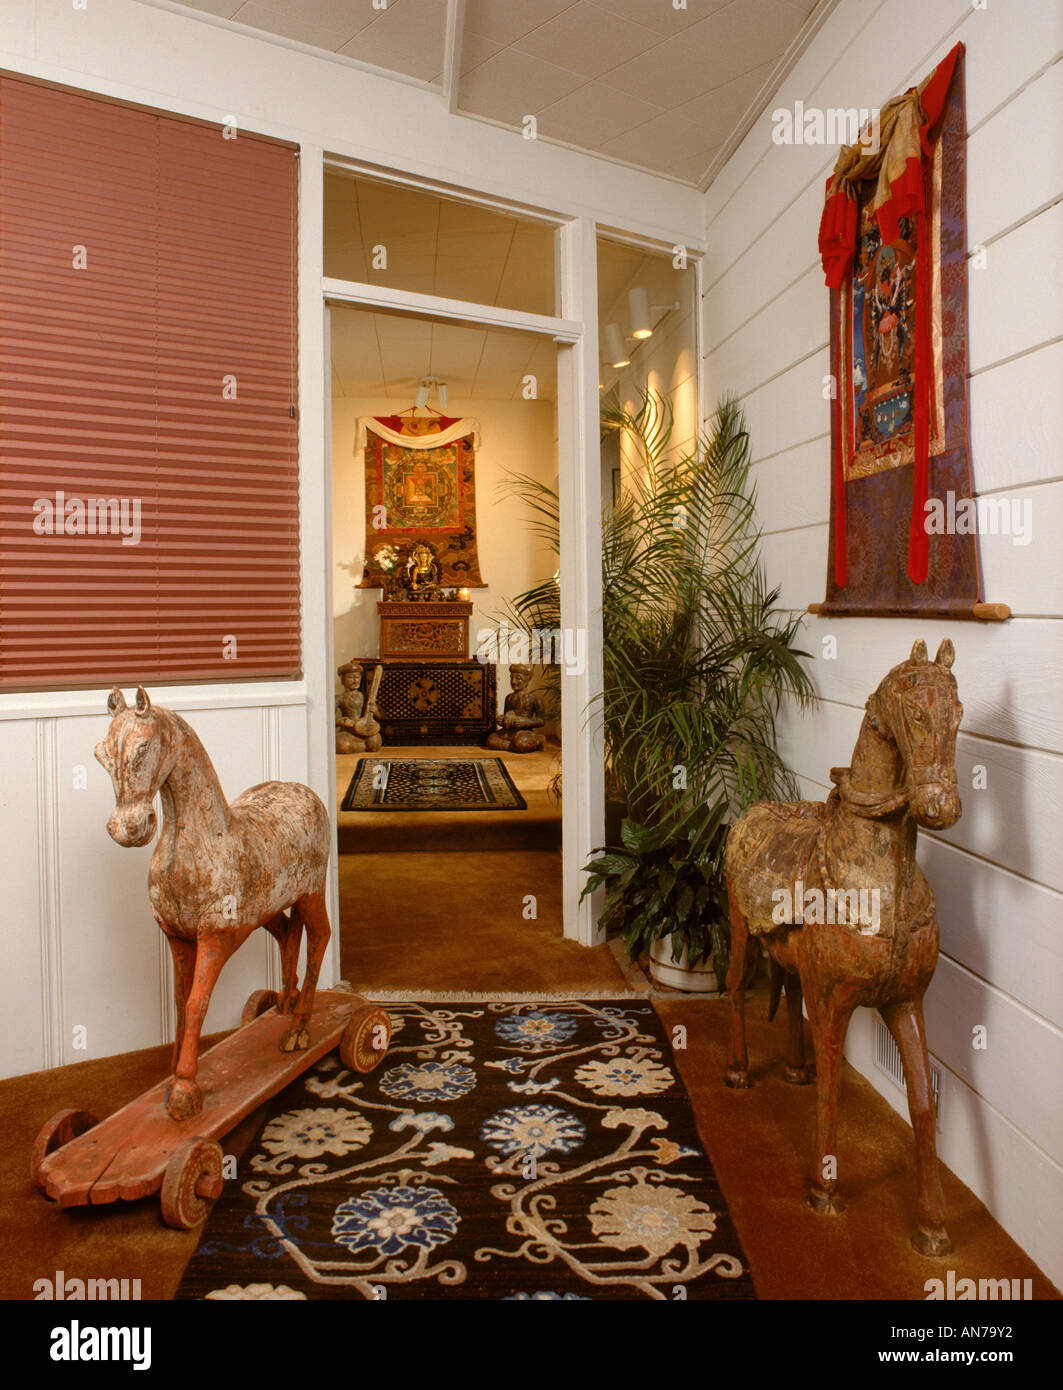 ENTRY HALL and BEDROOM with ASIAN MOTIF Tibetan rugs Buddhist Thankas and  Thai antique wooden horses. Entry Hall And Bedroom With Asian Motif Tibetan Rugs Buddhist